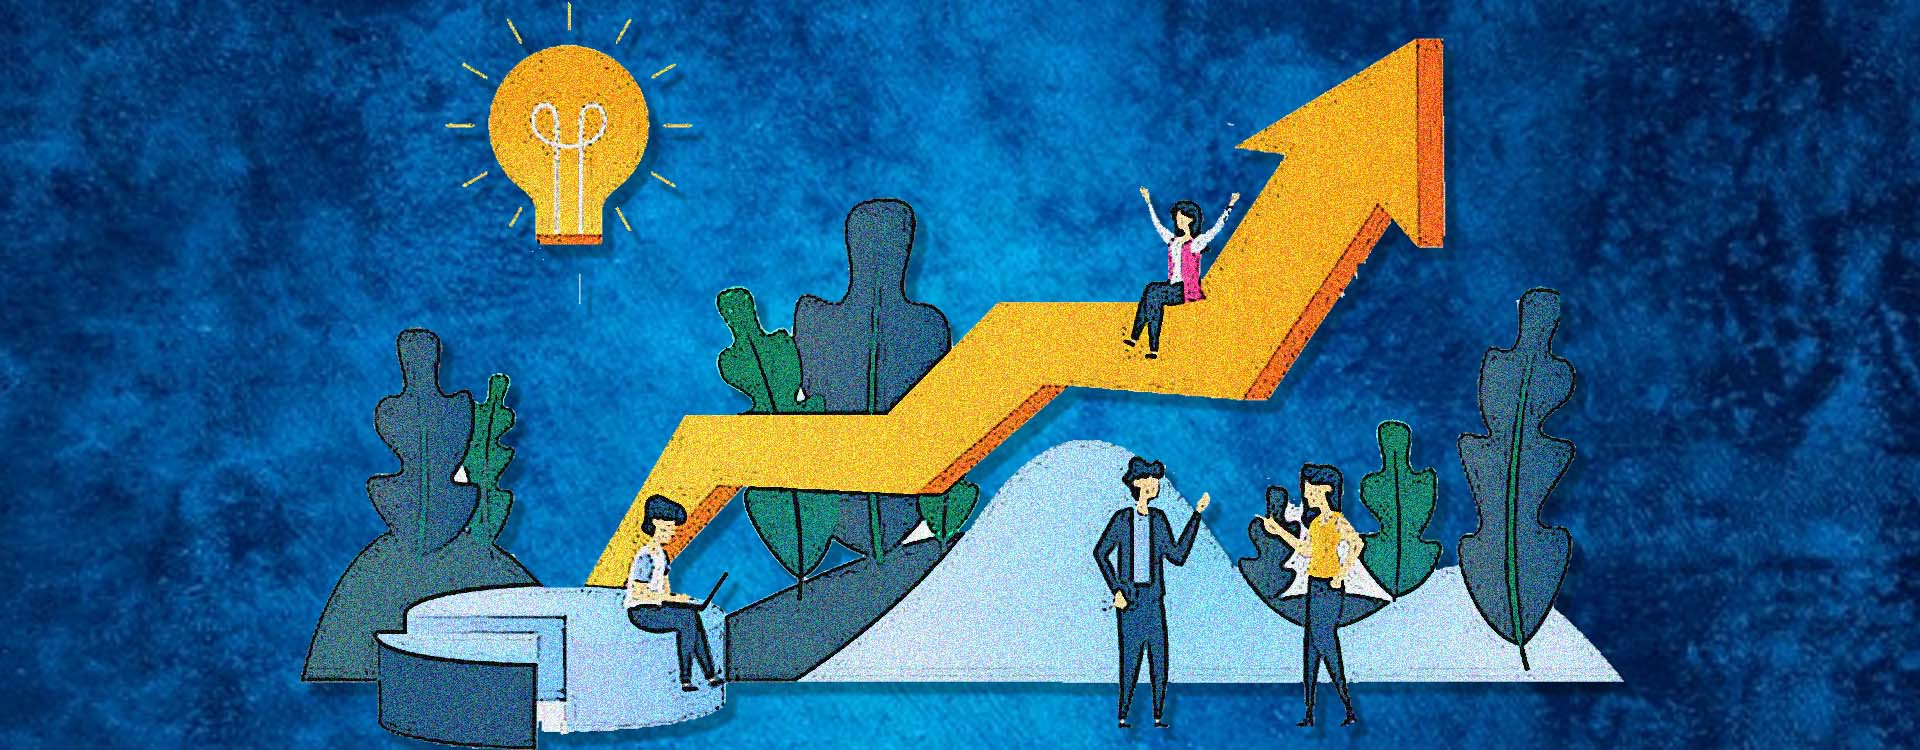 Growth Marketing- what is it and how does it work? know all about it